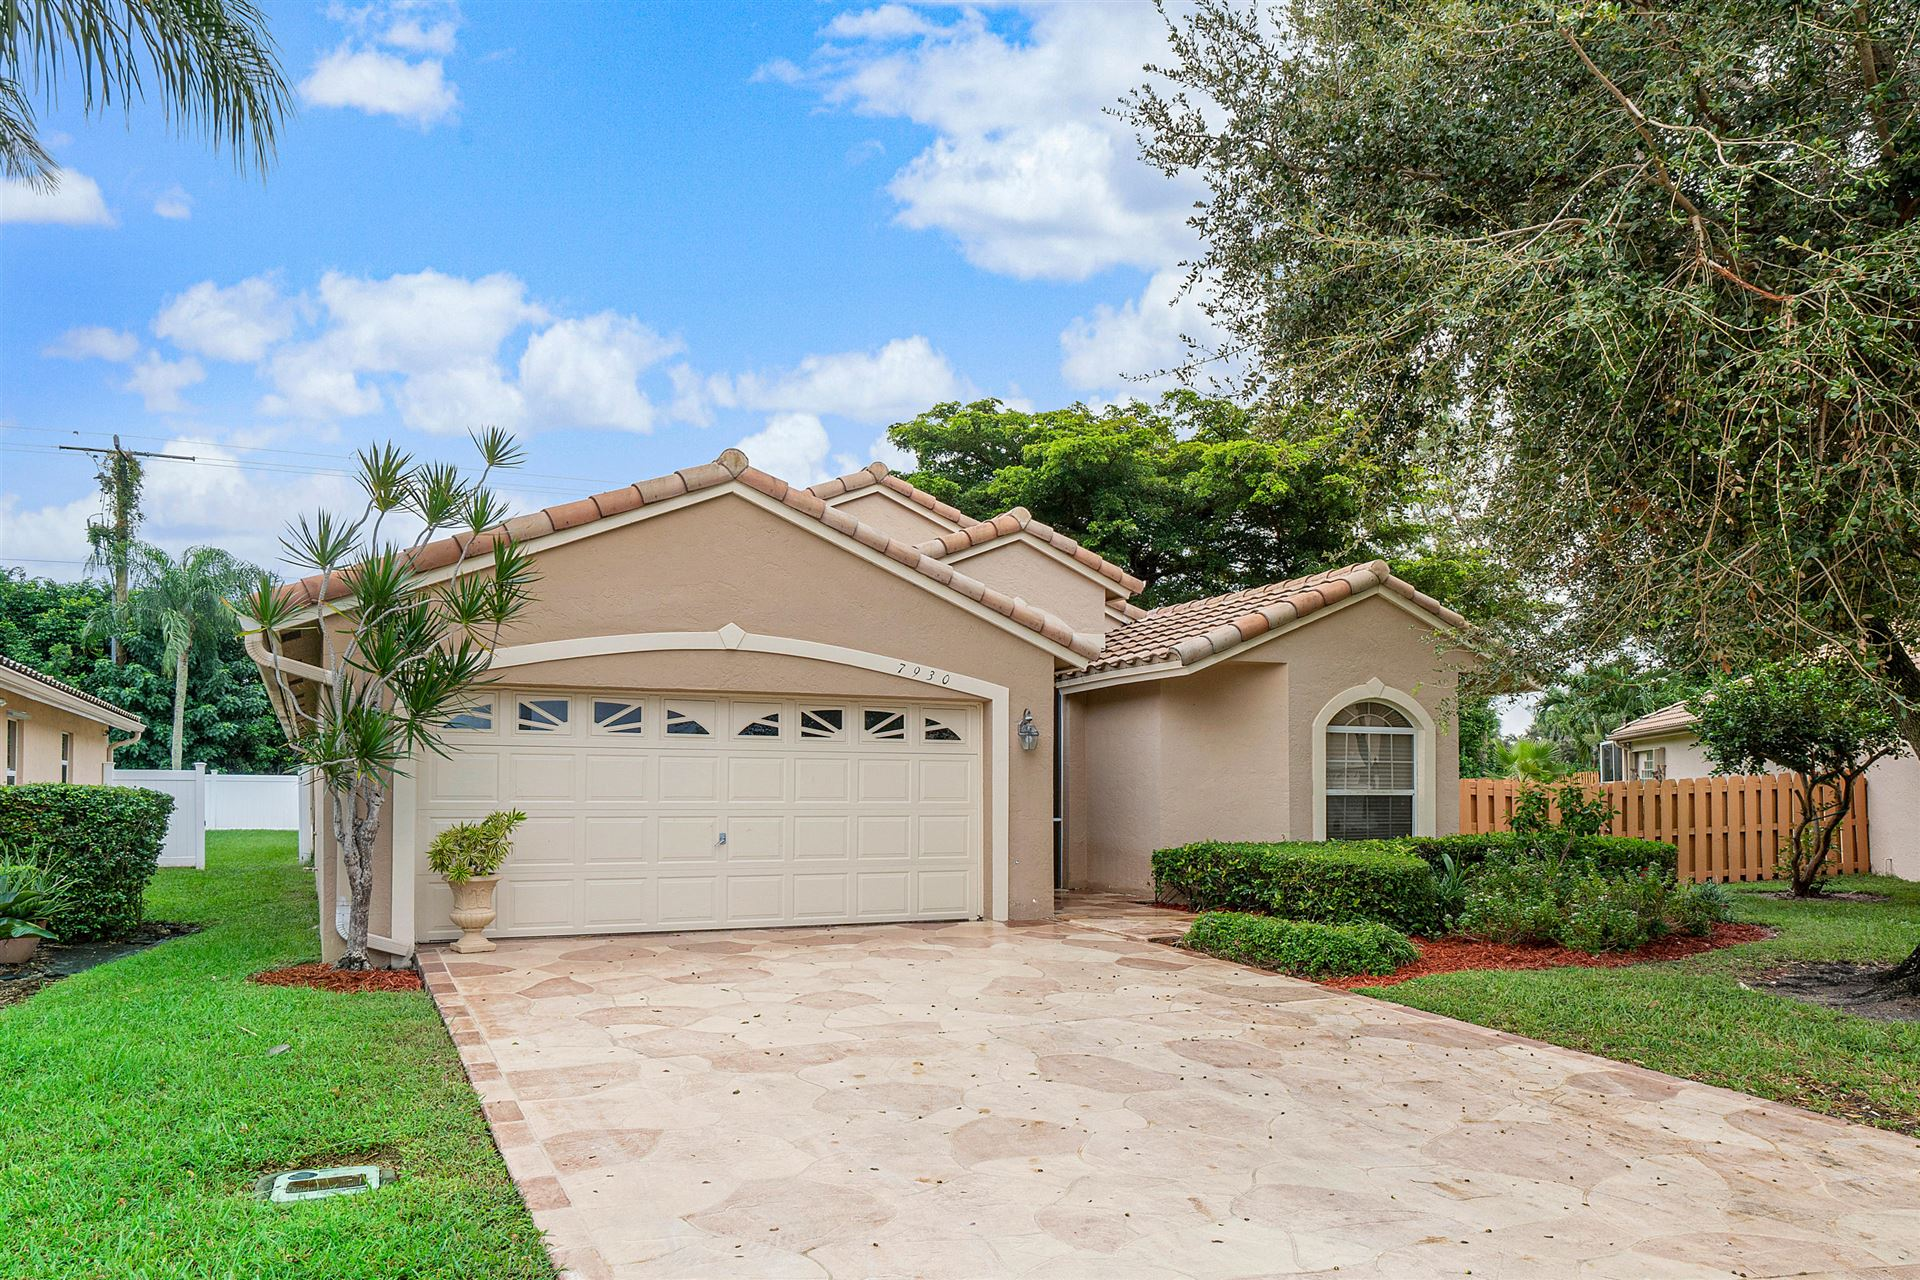 7930 Stirling Bridge Boulevard S, Delray Beach, FL 33446 - #: RX-10665054